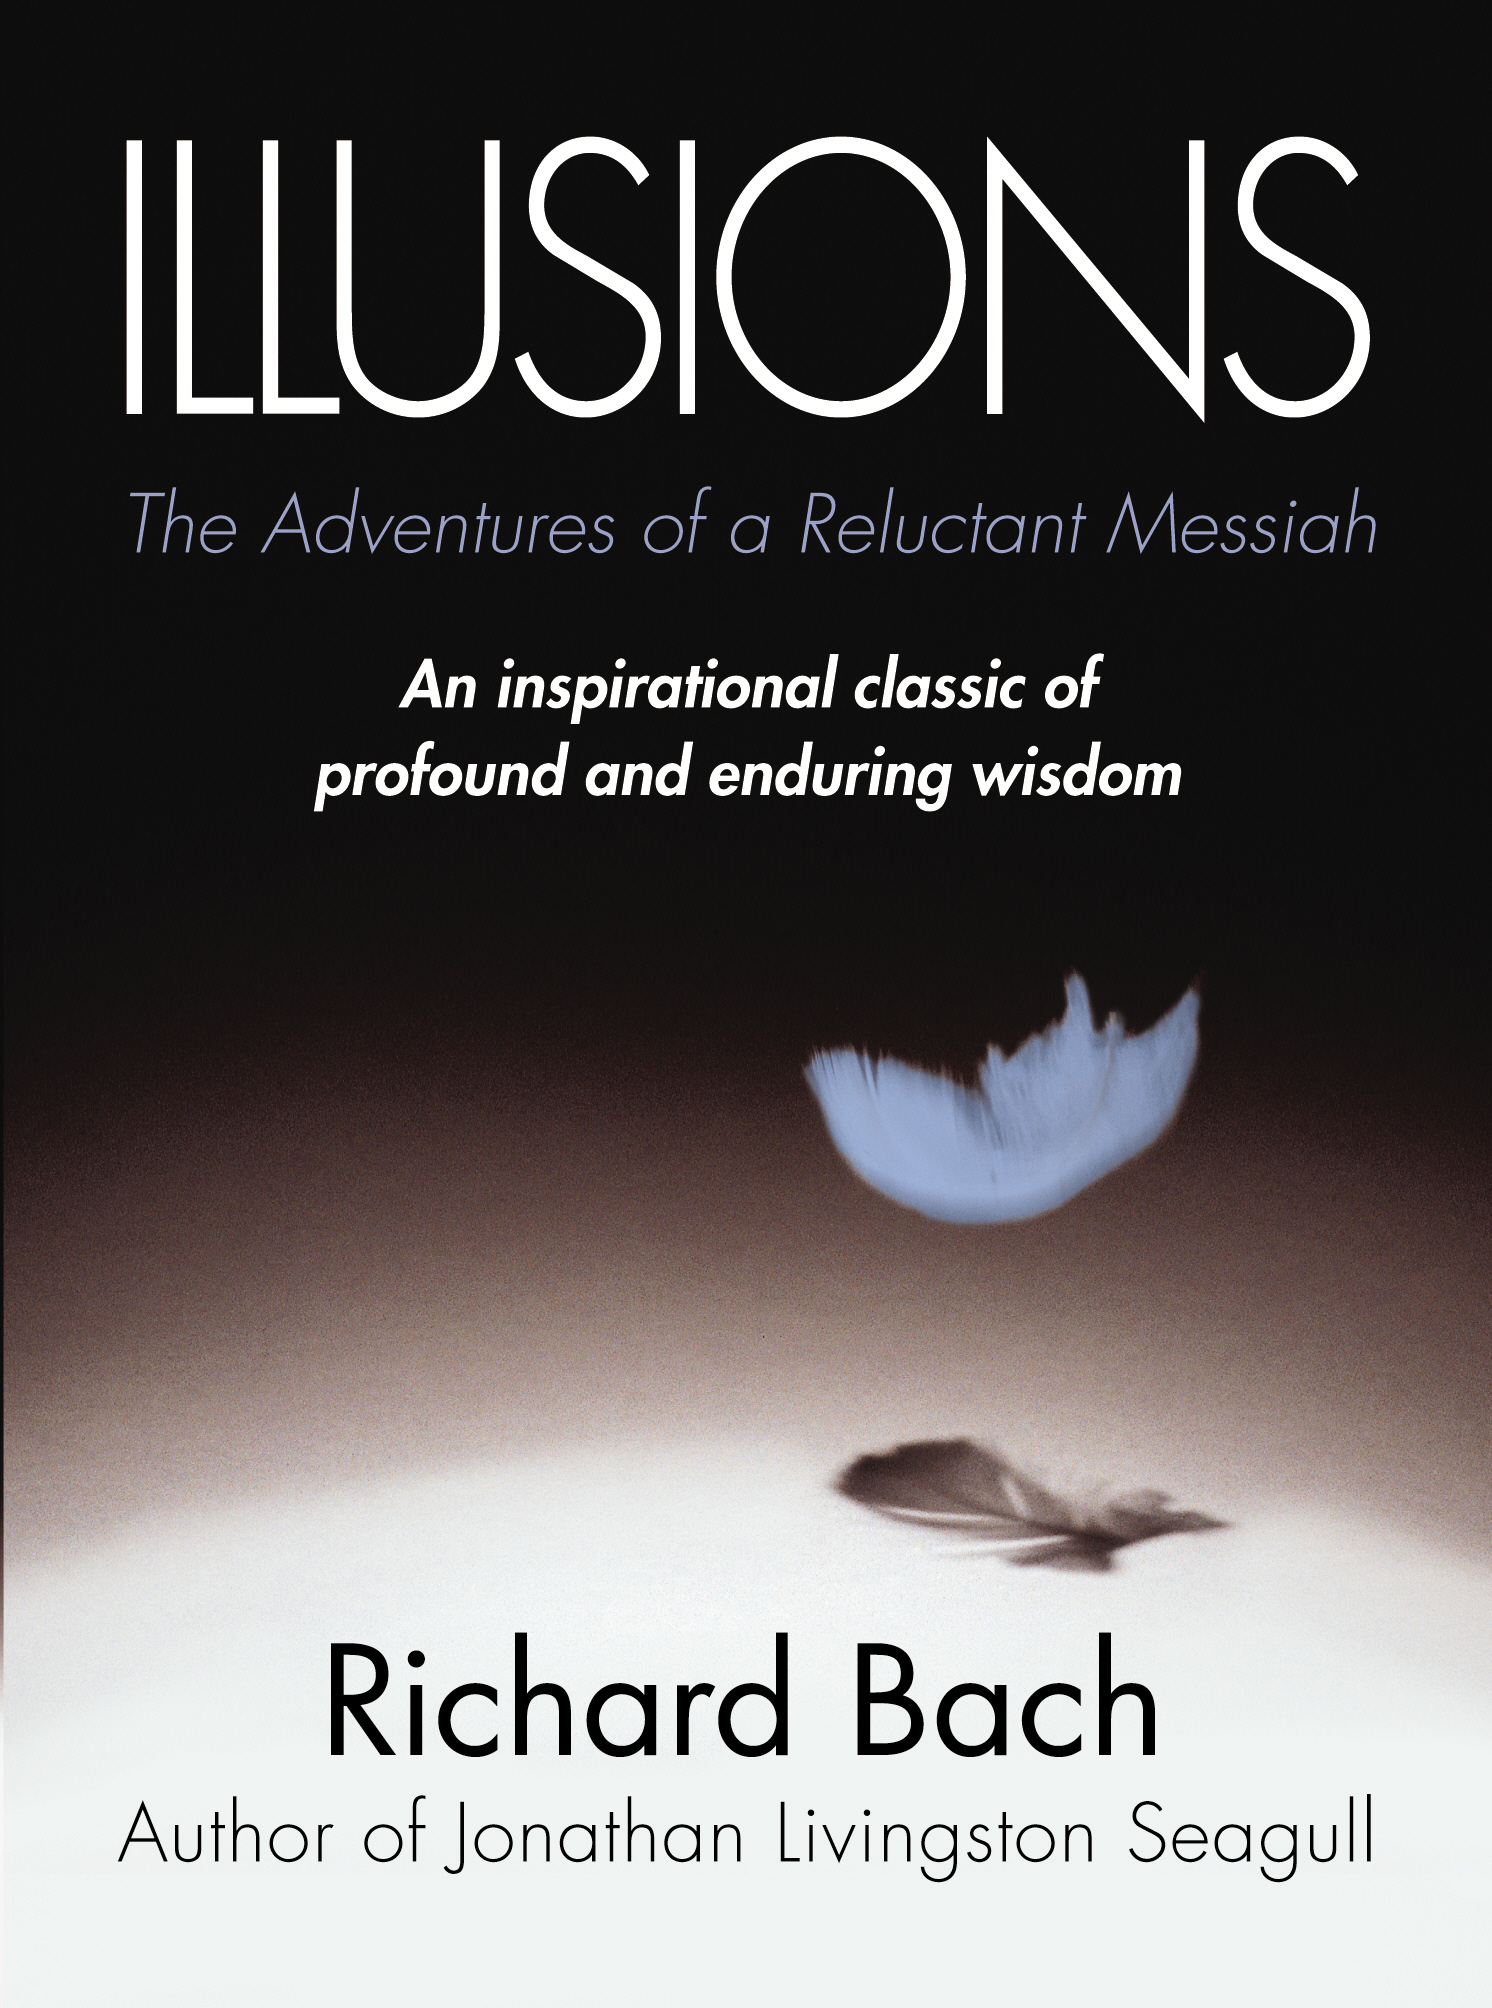 Illusions The Adventures of a Reluctant Messiah